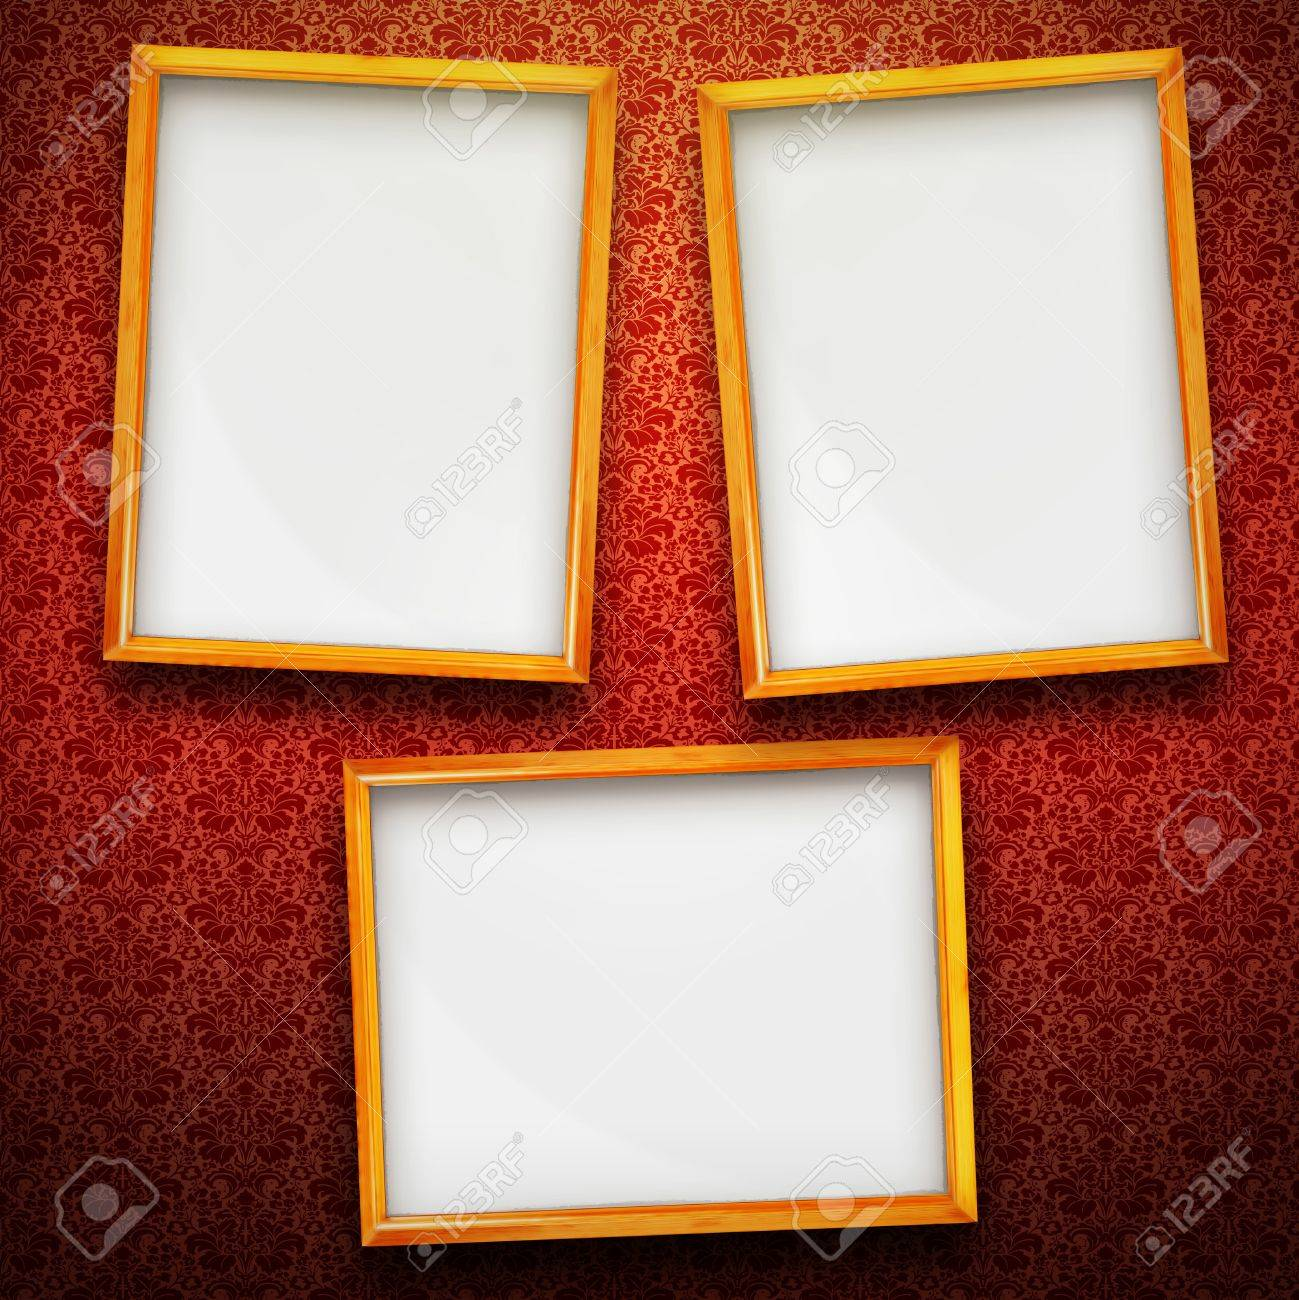 stock photo three big picture frames in gold on red vintage background